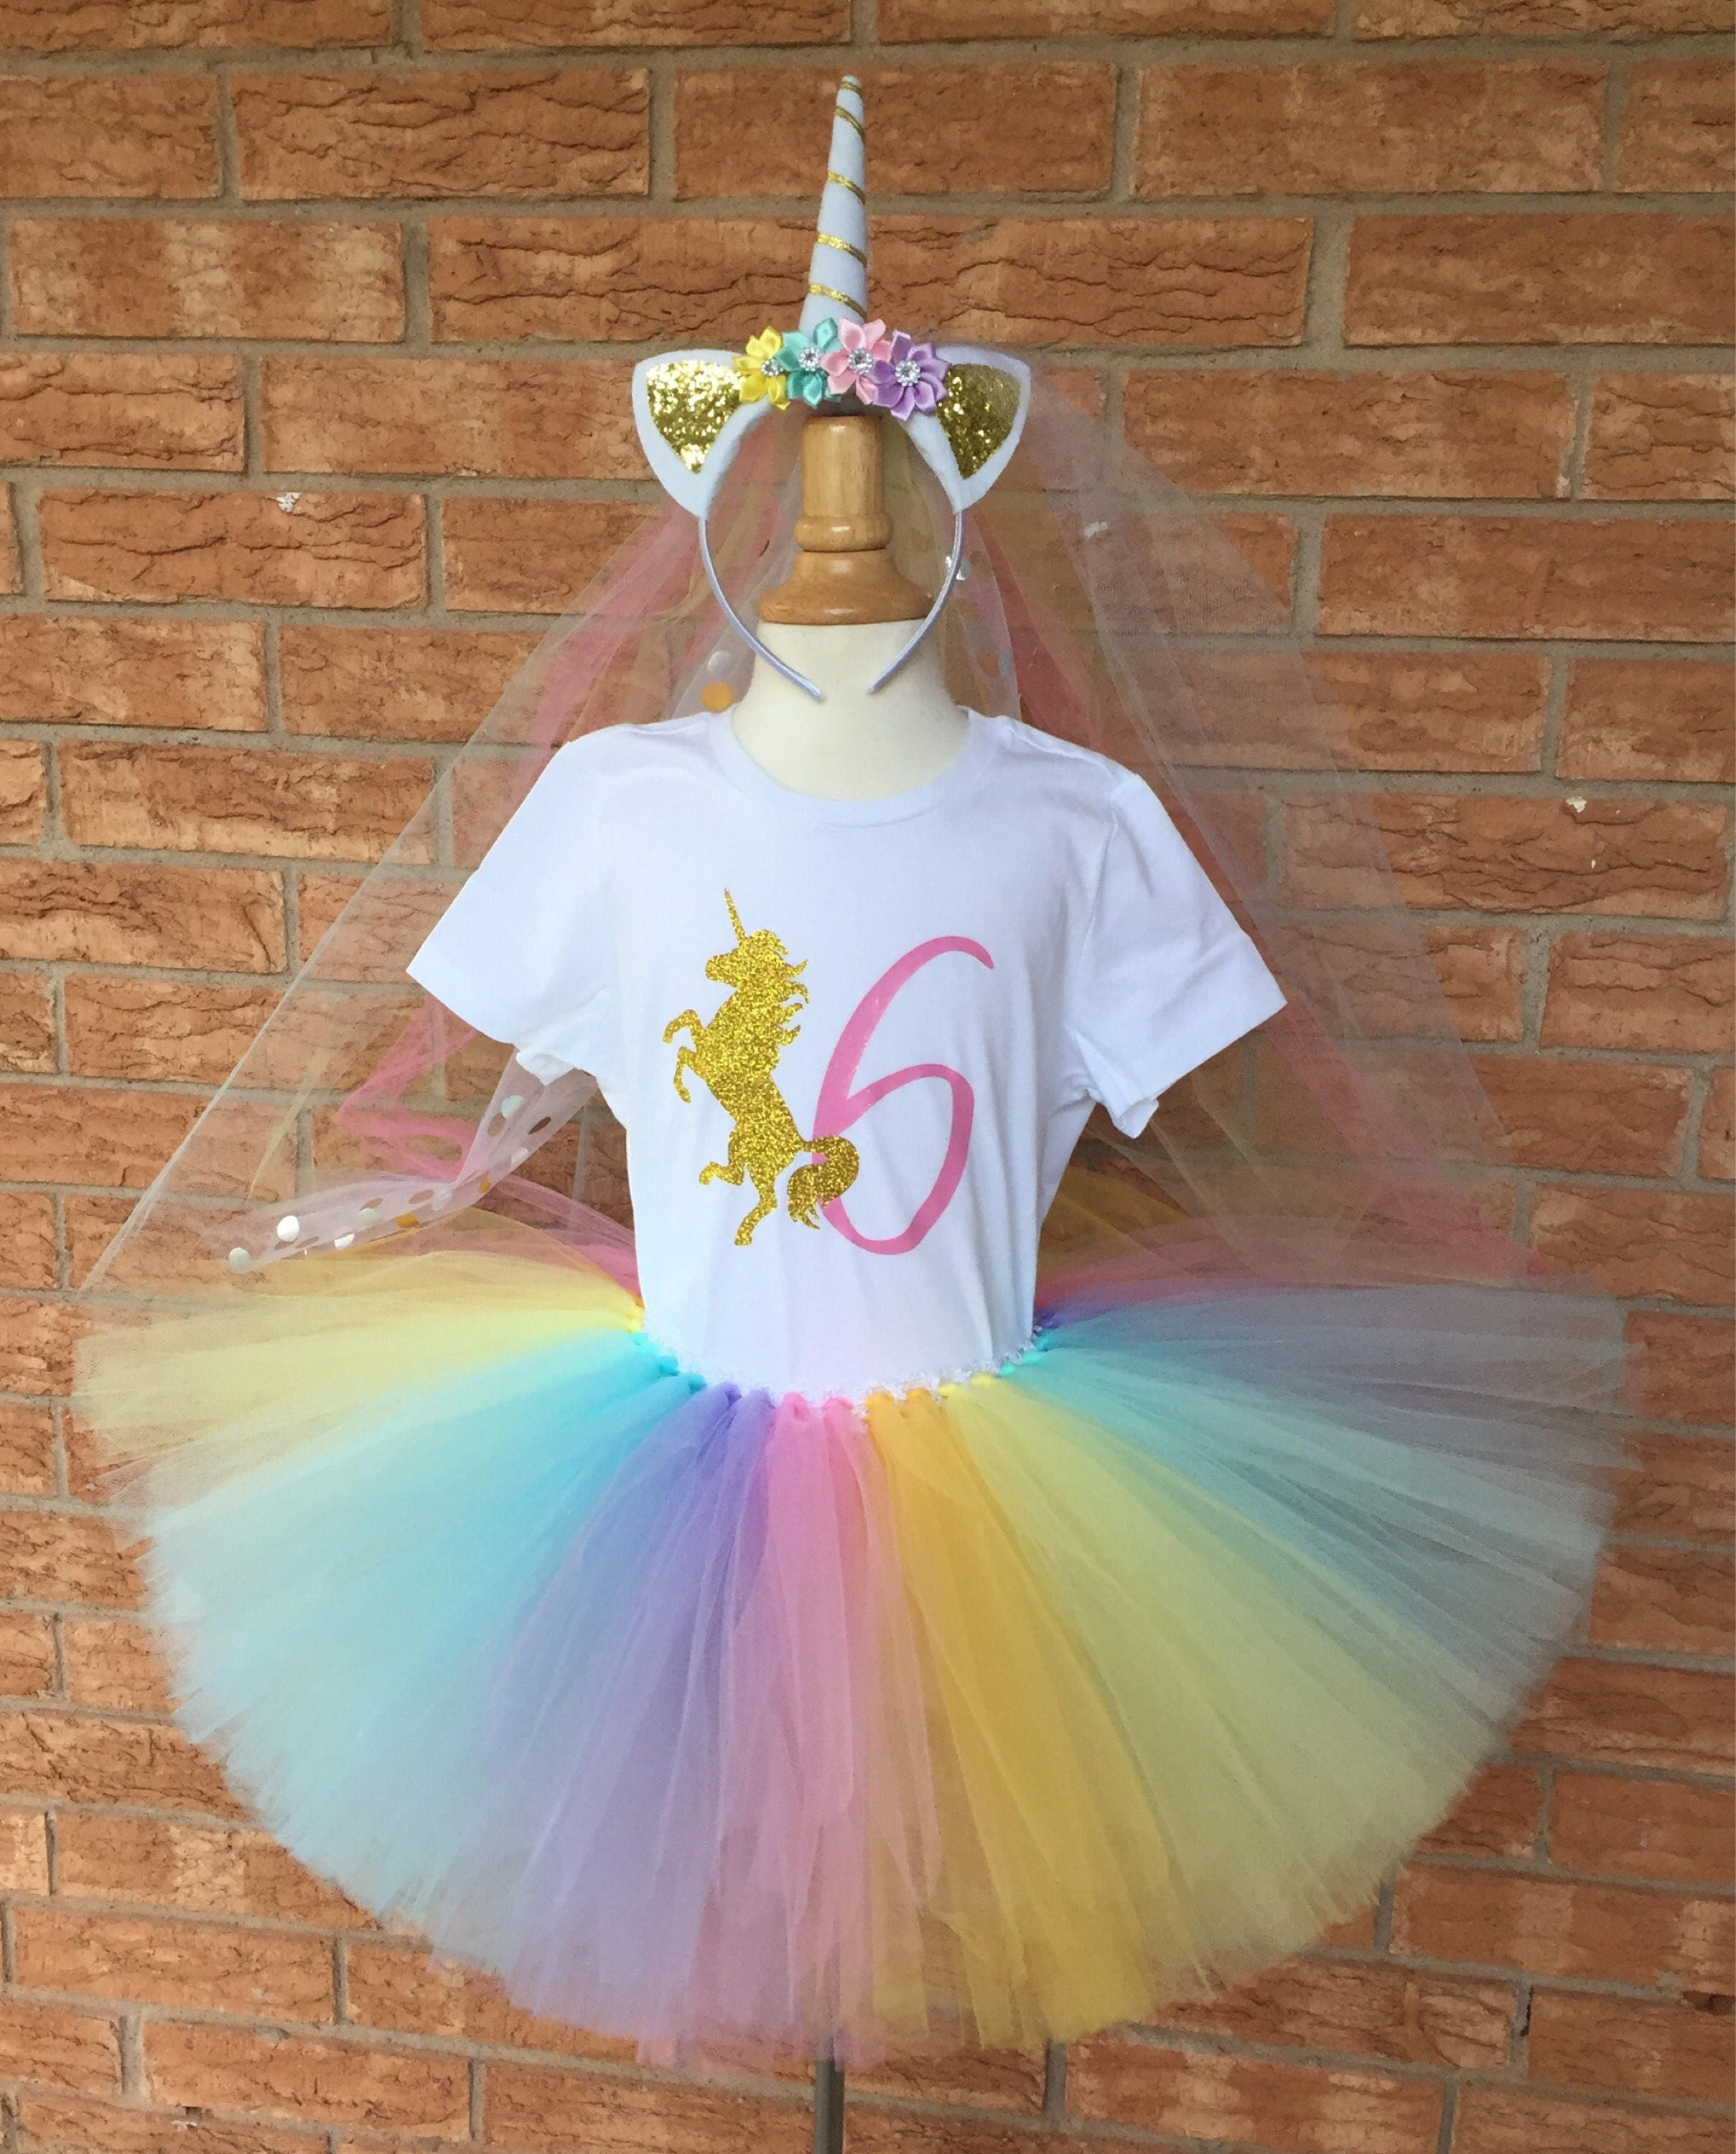 Birthday Party Outfit: Girl's Unicorn Birthday Outfit 6th Birthday Tutu Rainbow